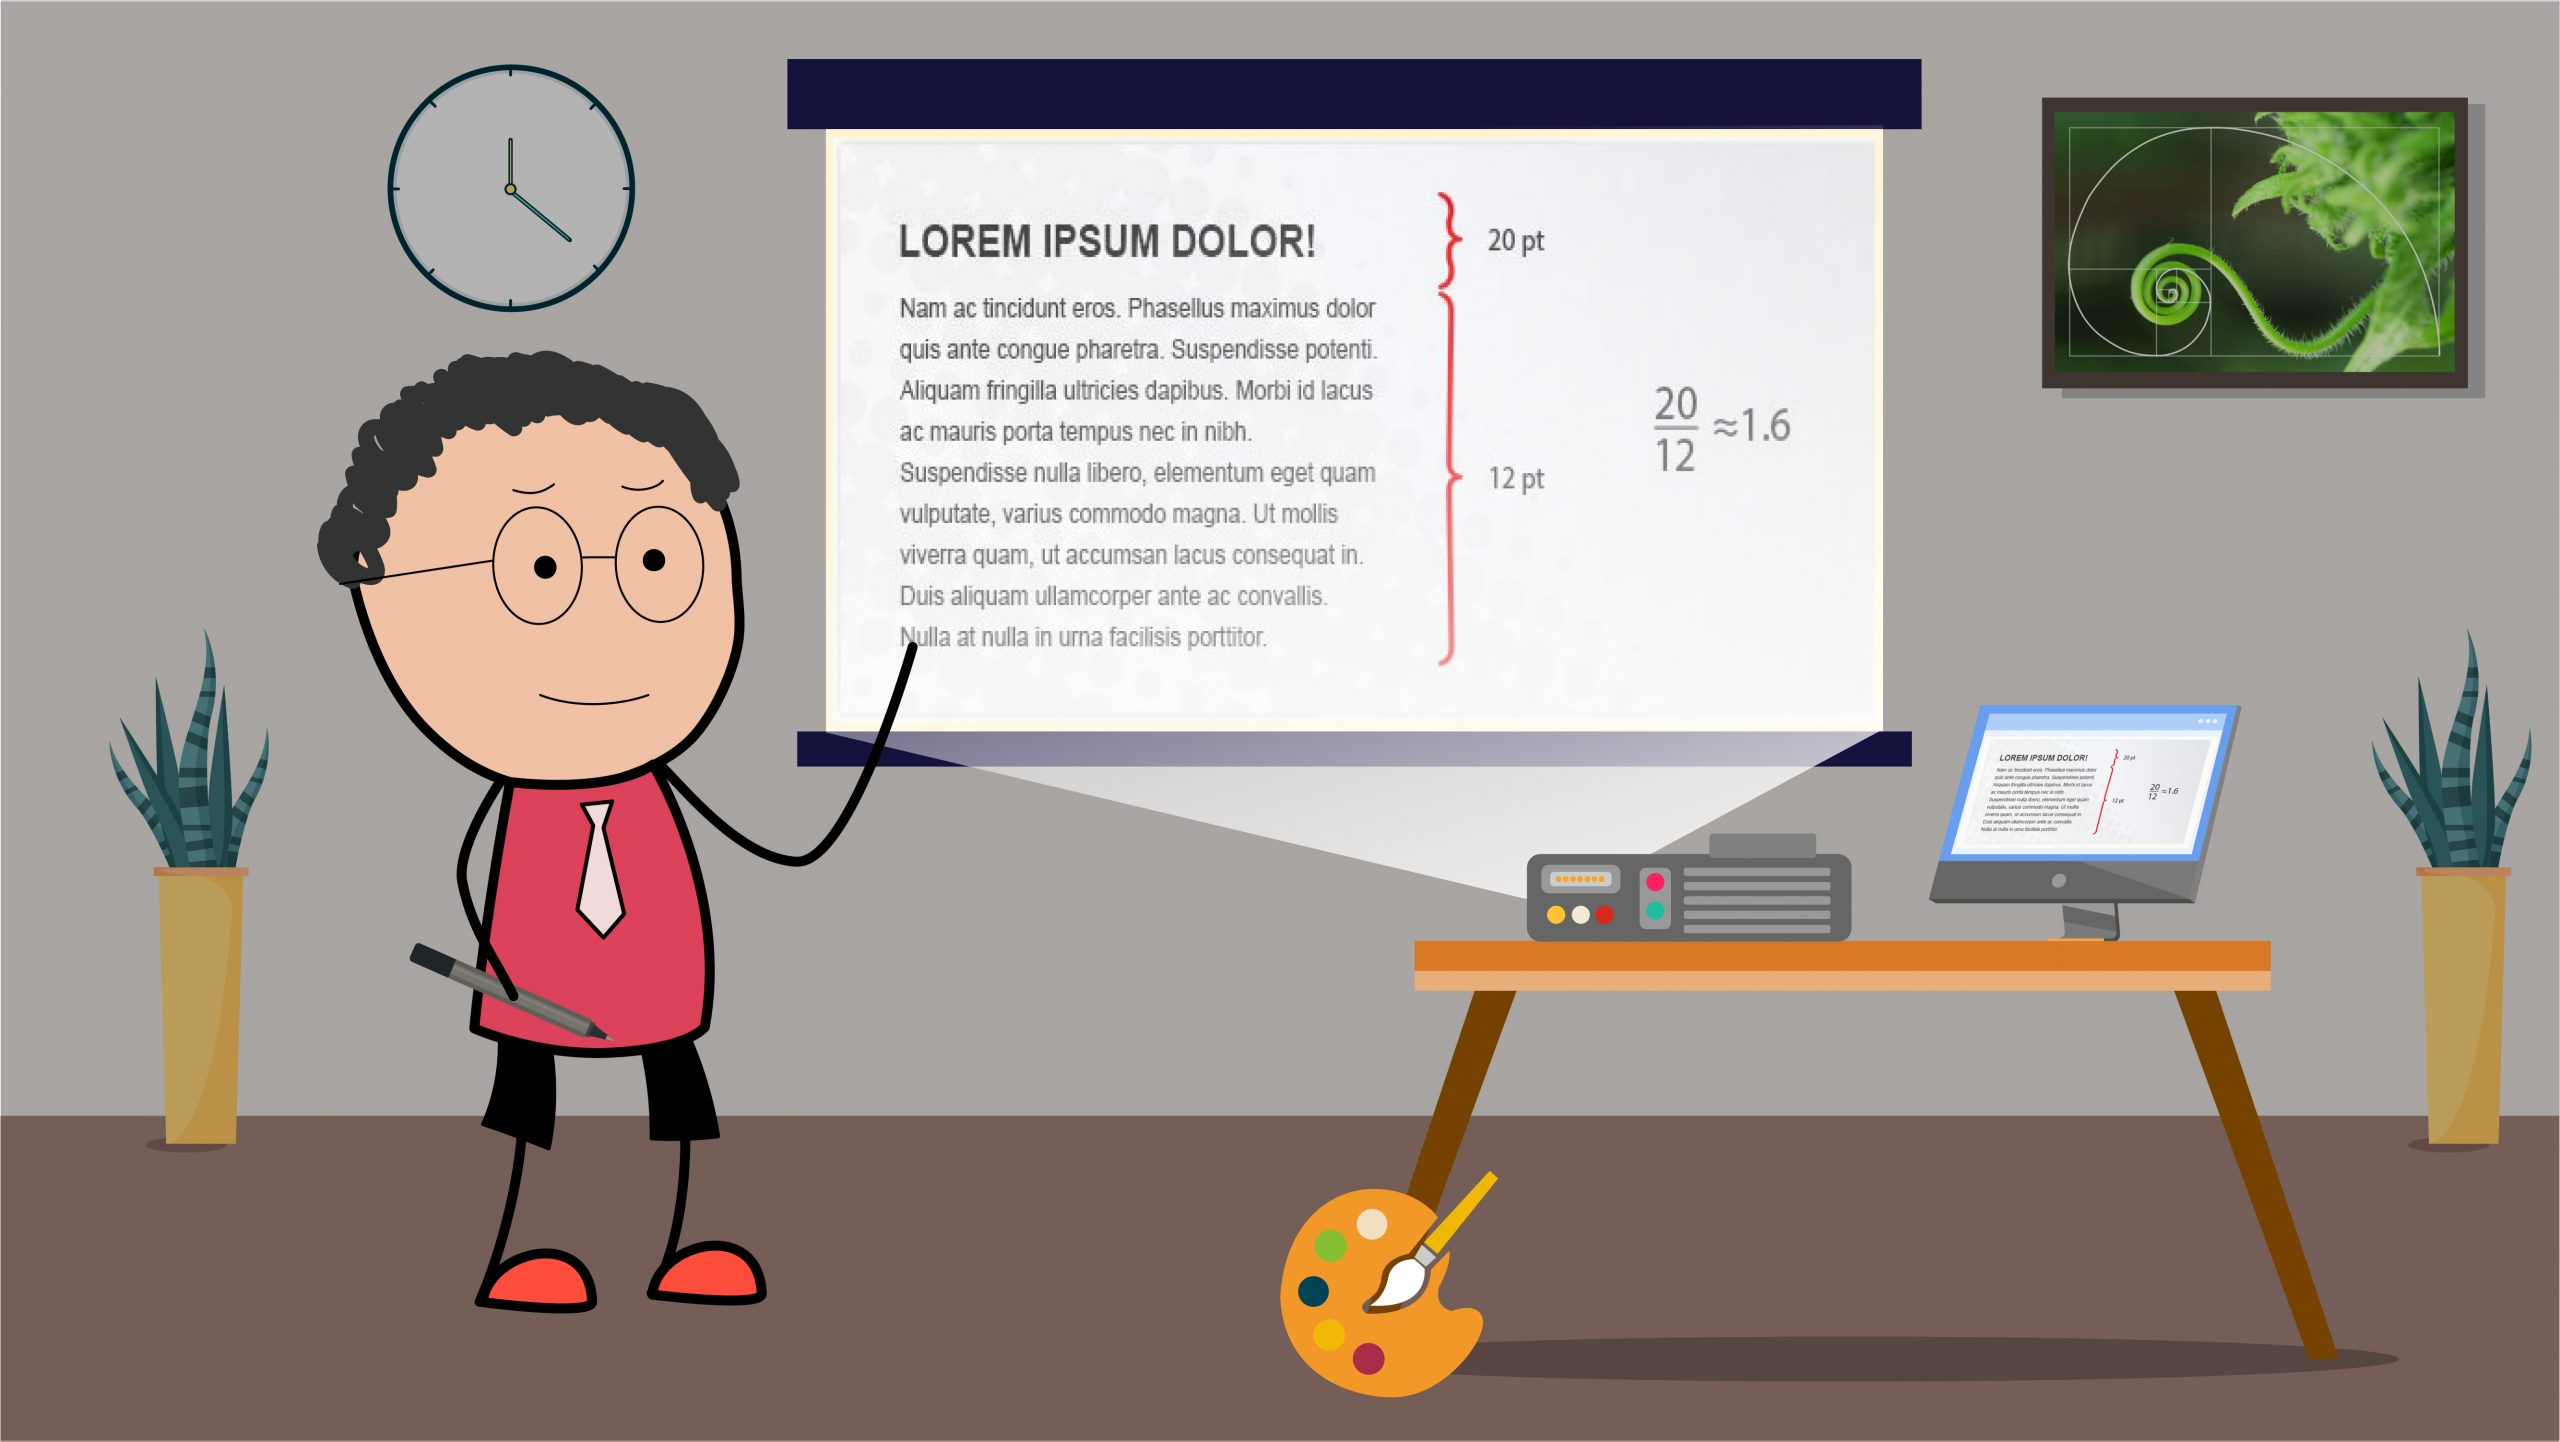 Learn The Science Of Proportions: The Golden Ratio